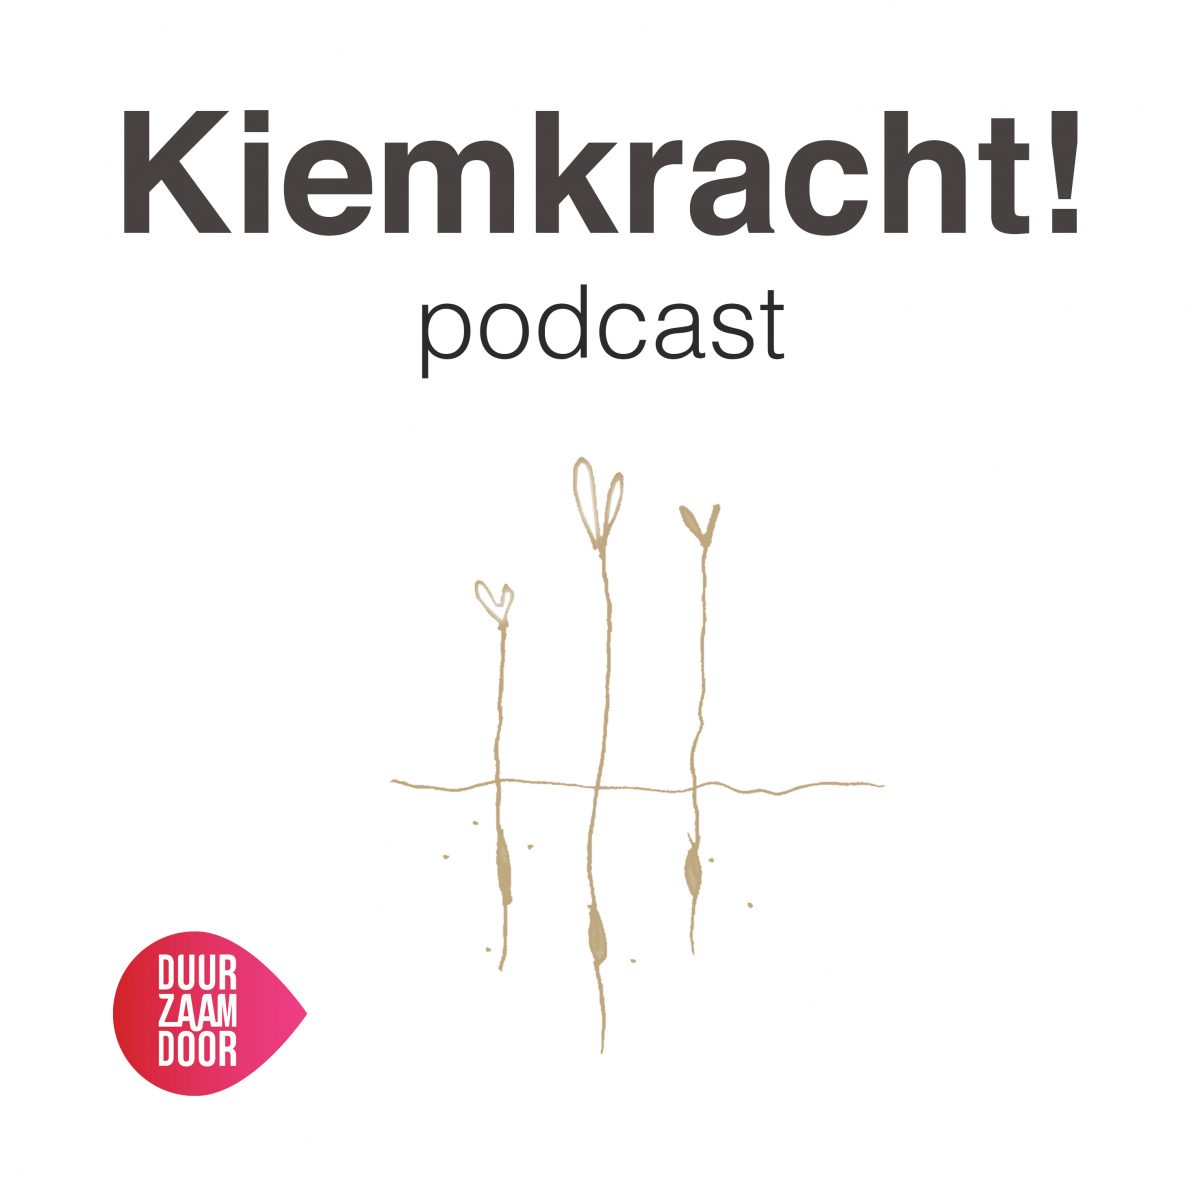 Kiemkracht!: Podcast met transitieverhalen